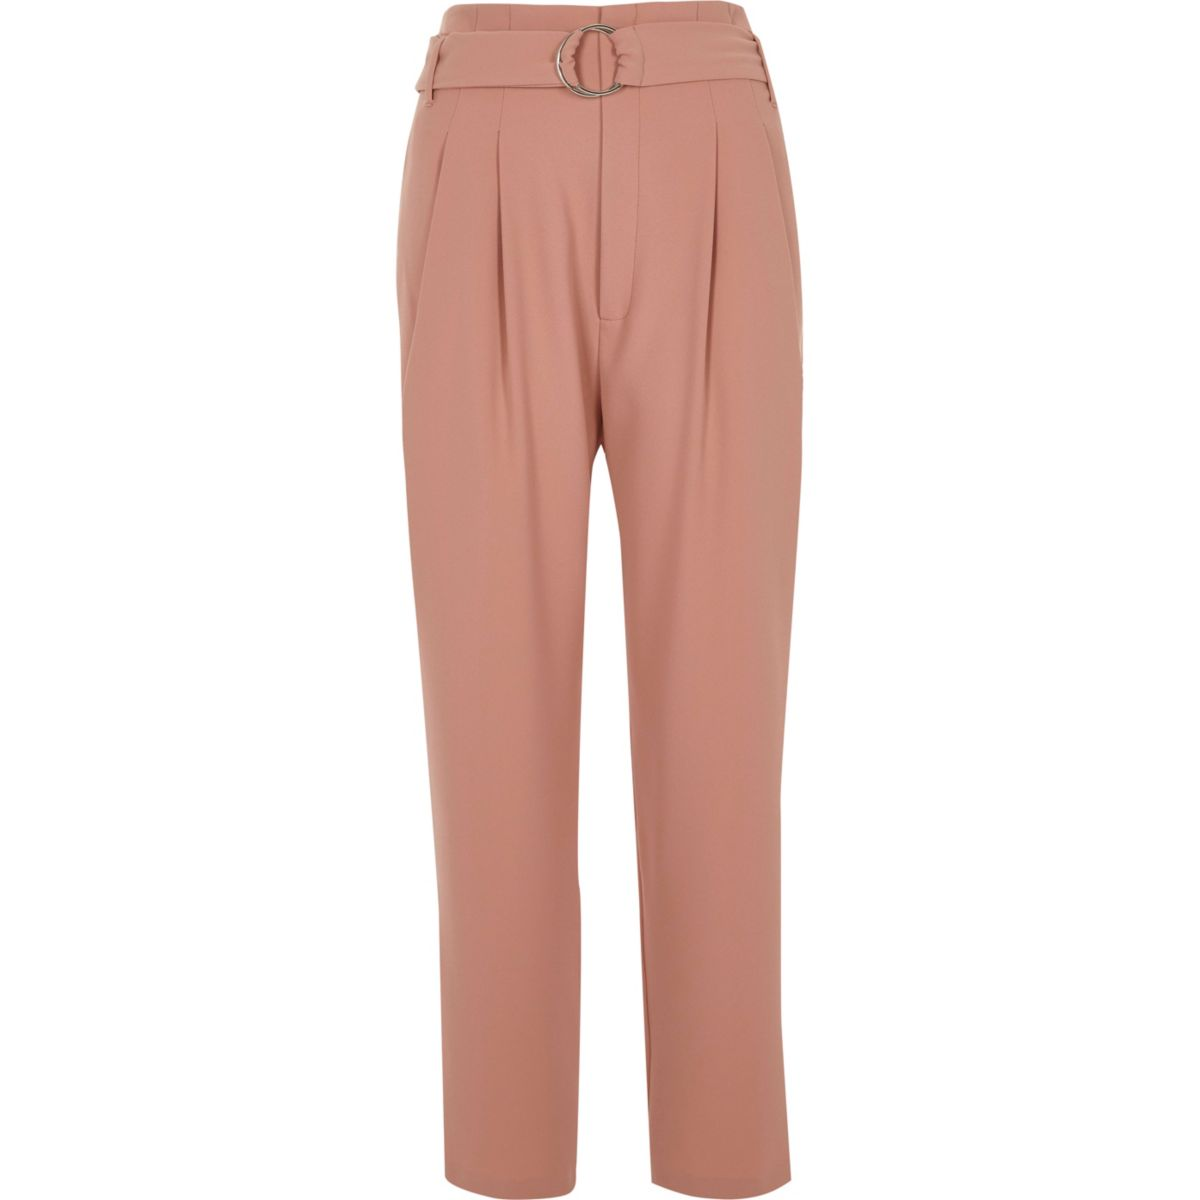 From working out to lounging, shop leggings and tights. Choose from cotton and cropped, to high waisted and lace up leggings. Find your leggings look at PINK.